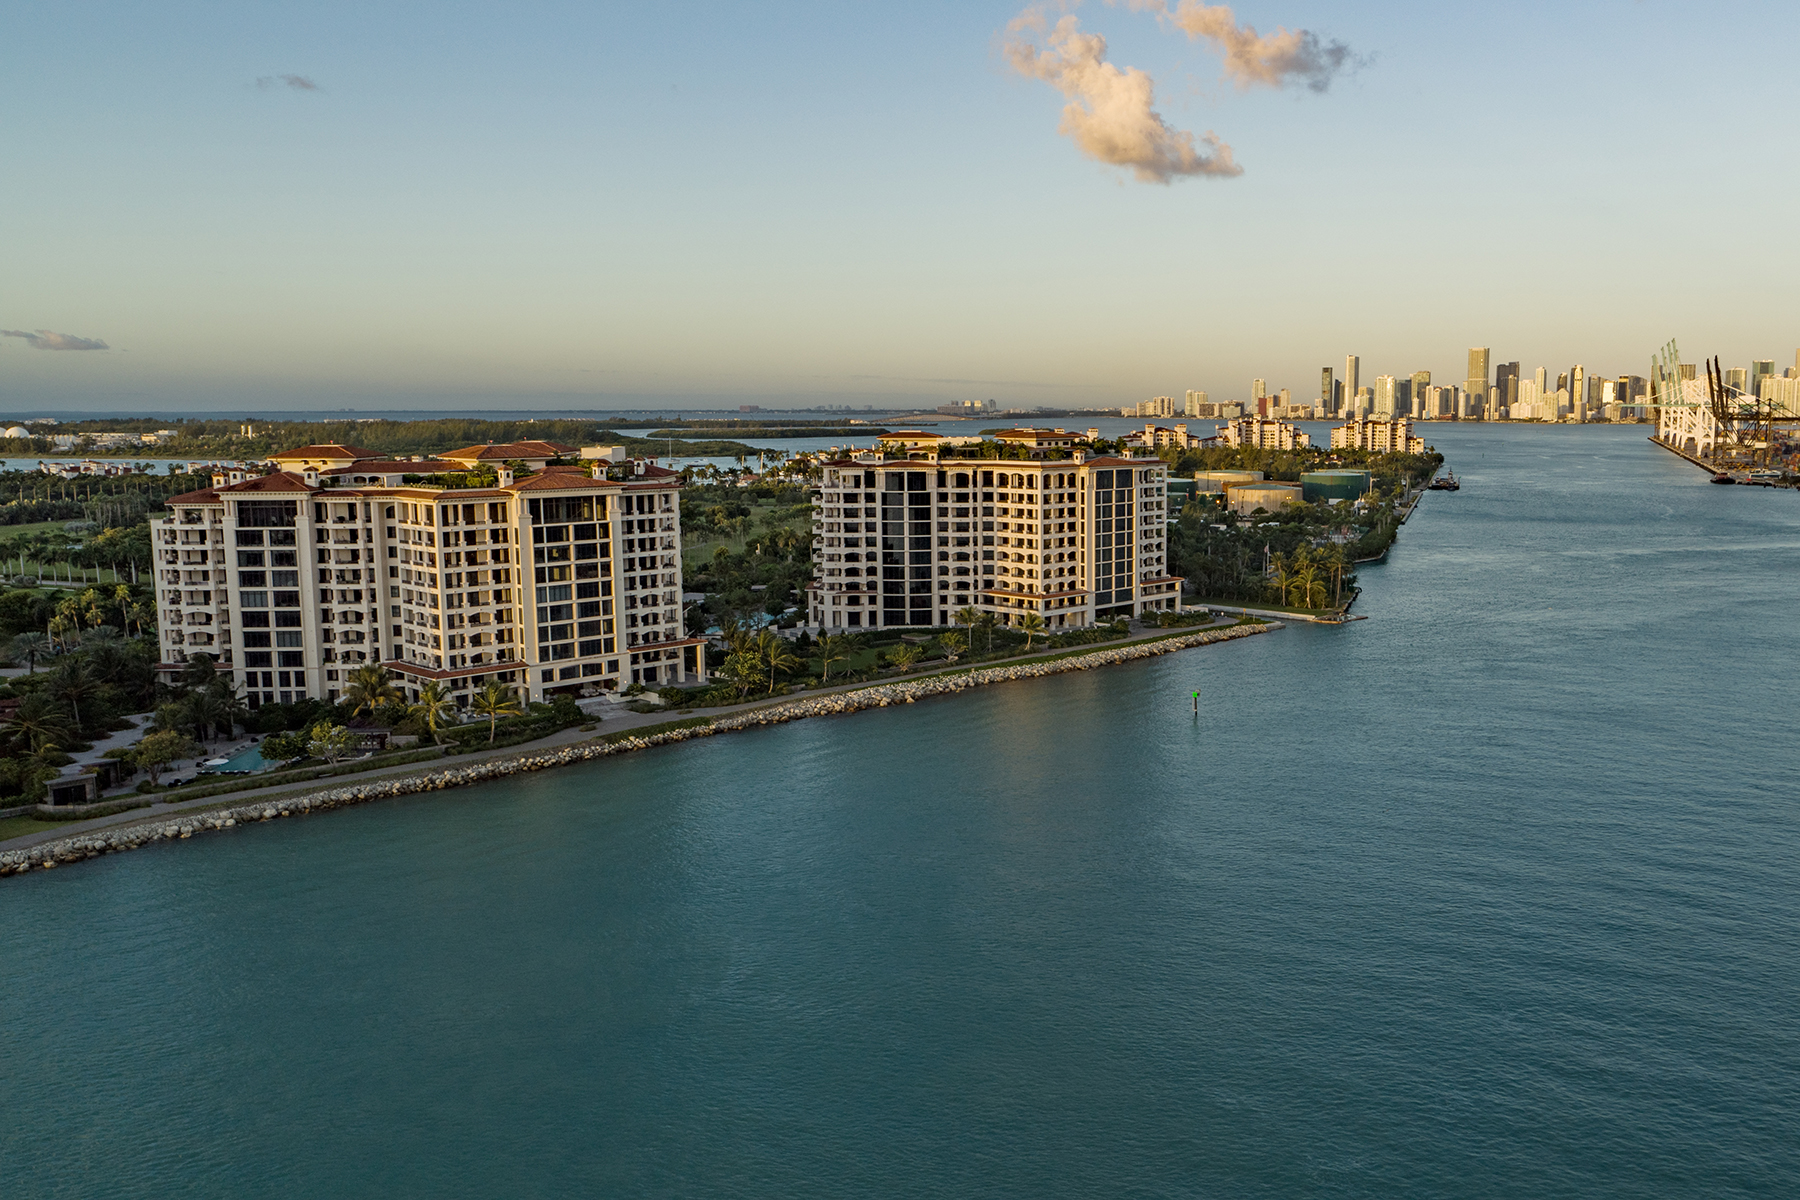 View of Palazzo Della Luna and downtown Miami from the water